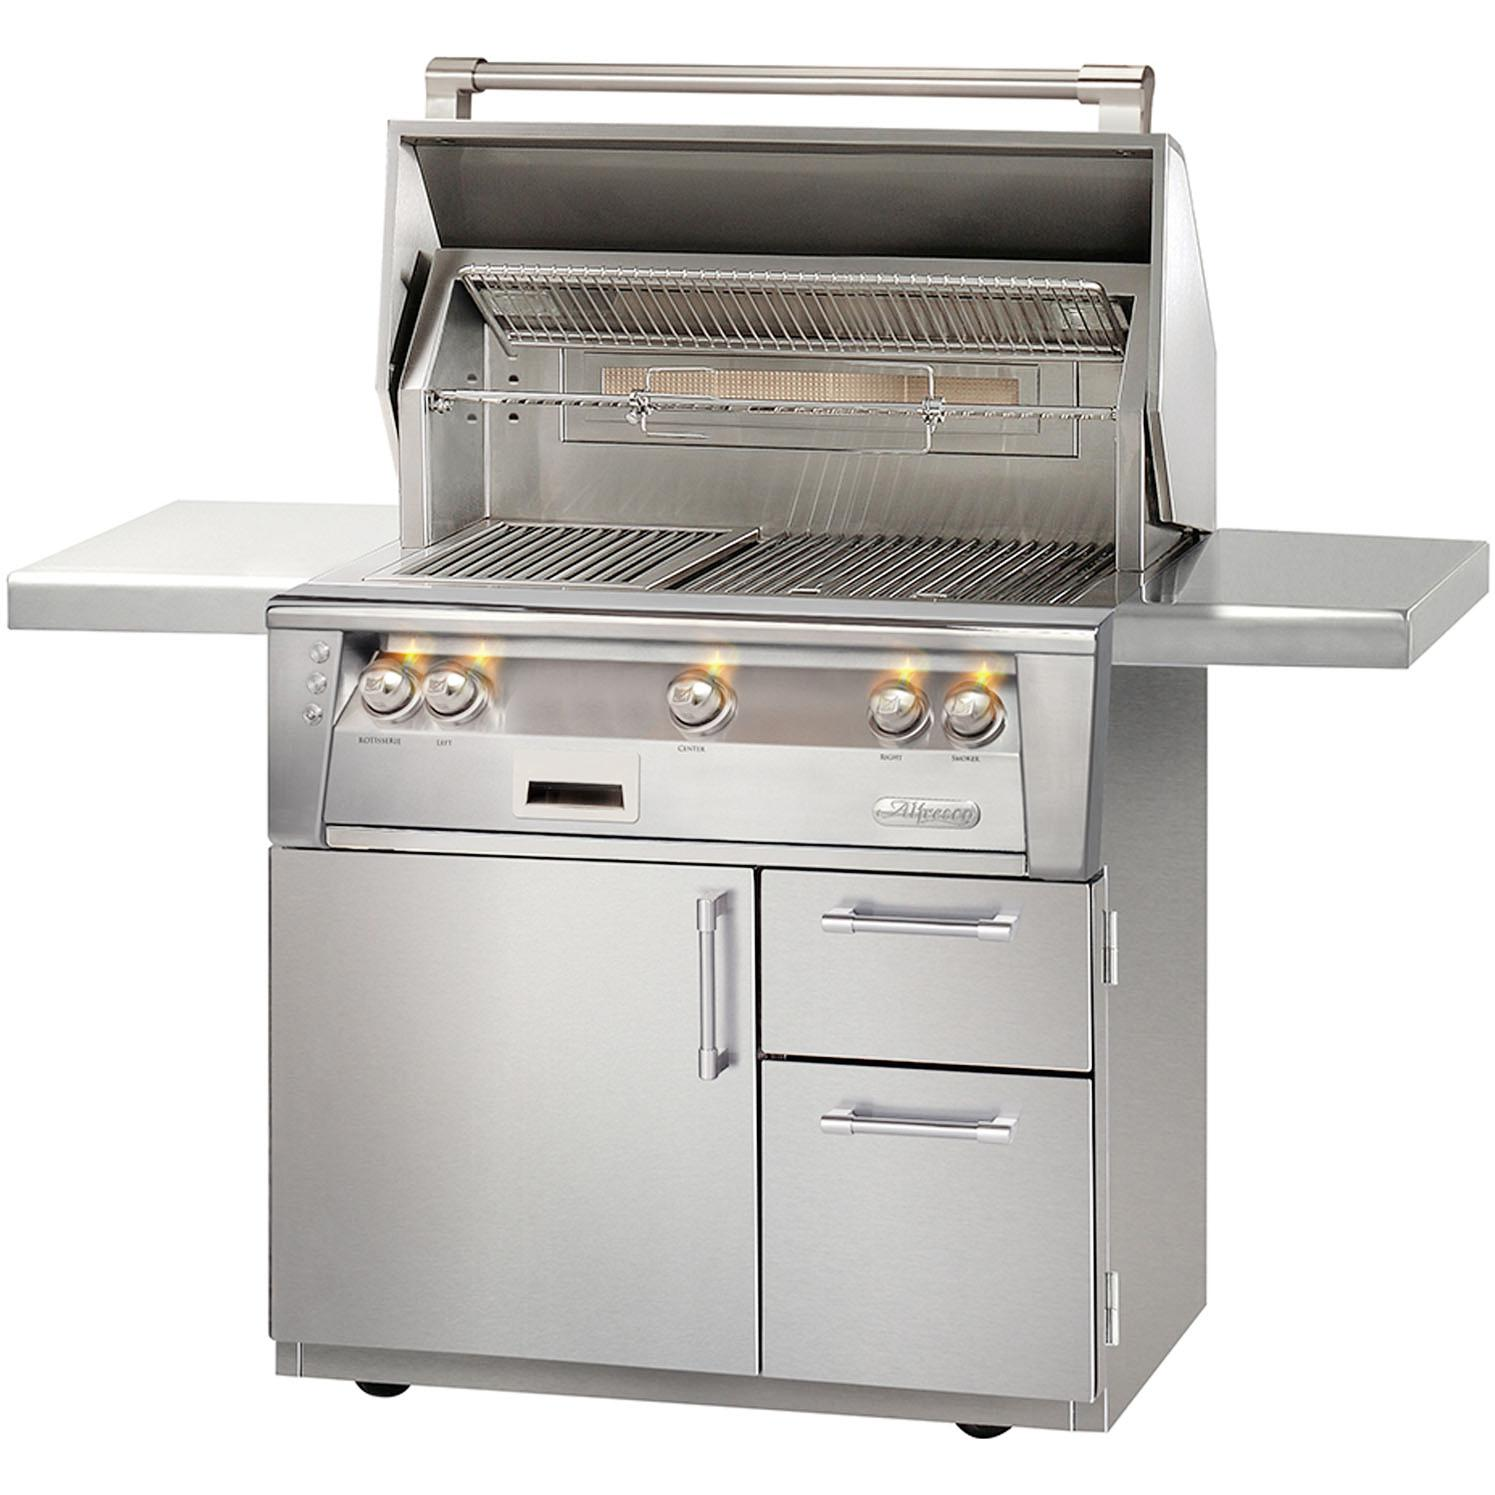 Alfresco LXE 36-Inch Propane Gas Grill On Deluxe Cart With Sear Zone And Rotisserie - ALXE-36SZCD-LP 2911882